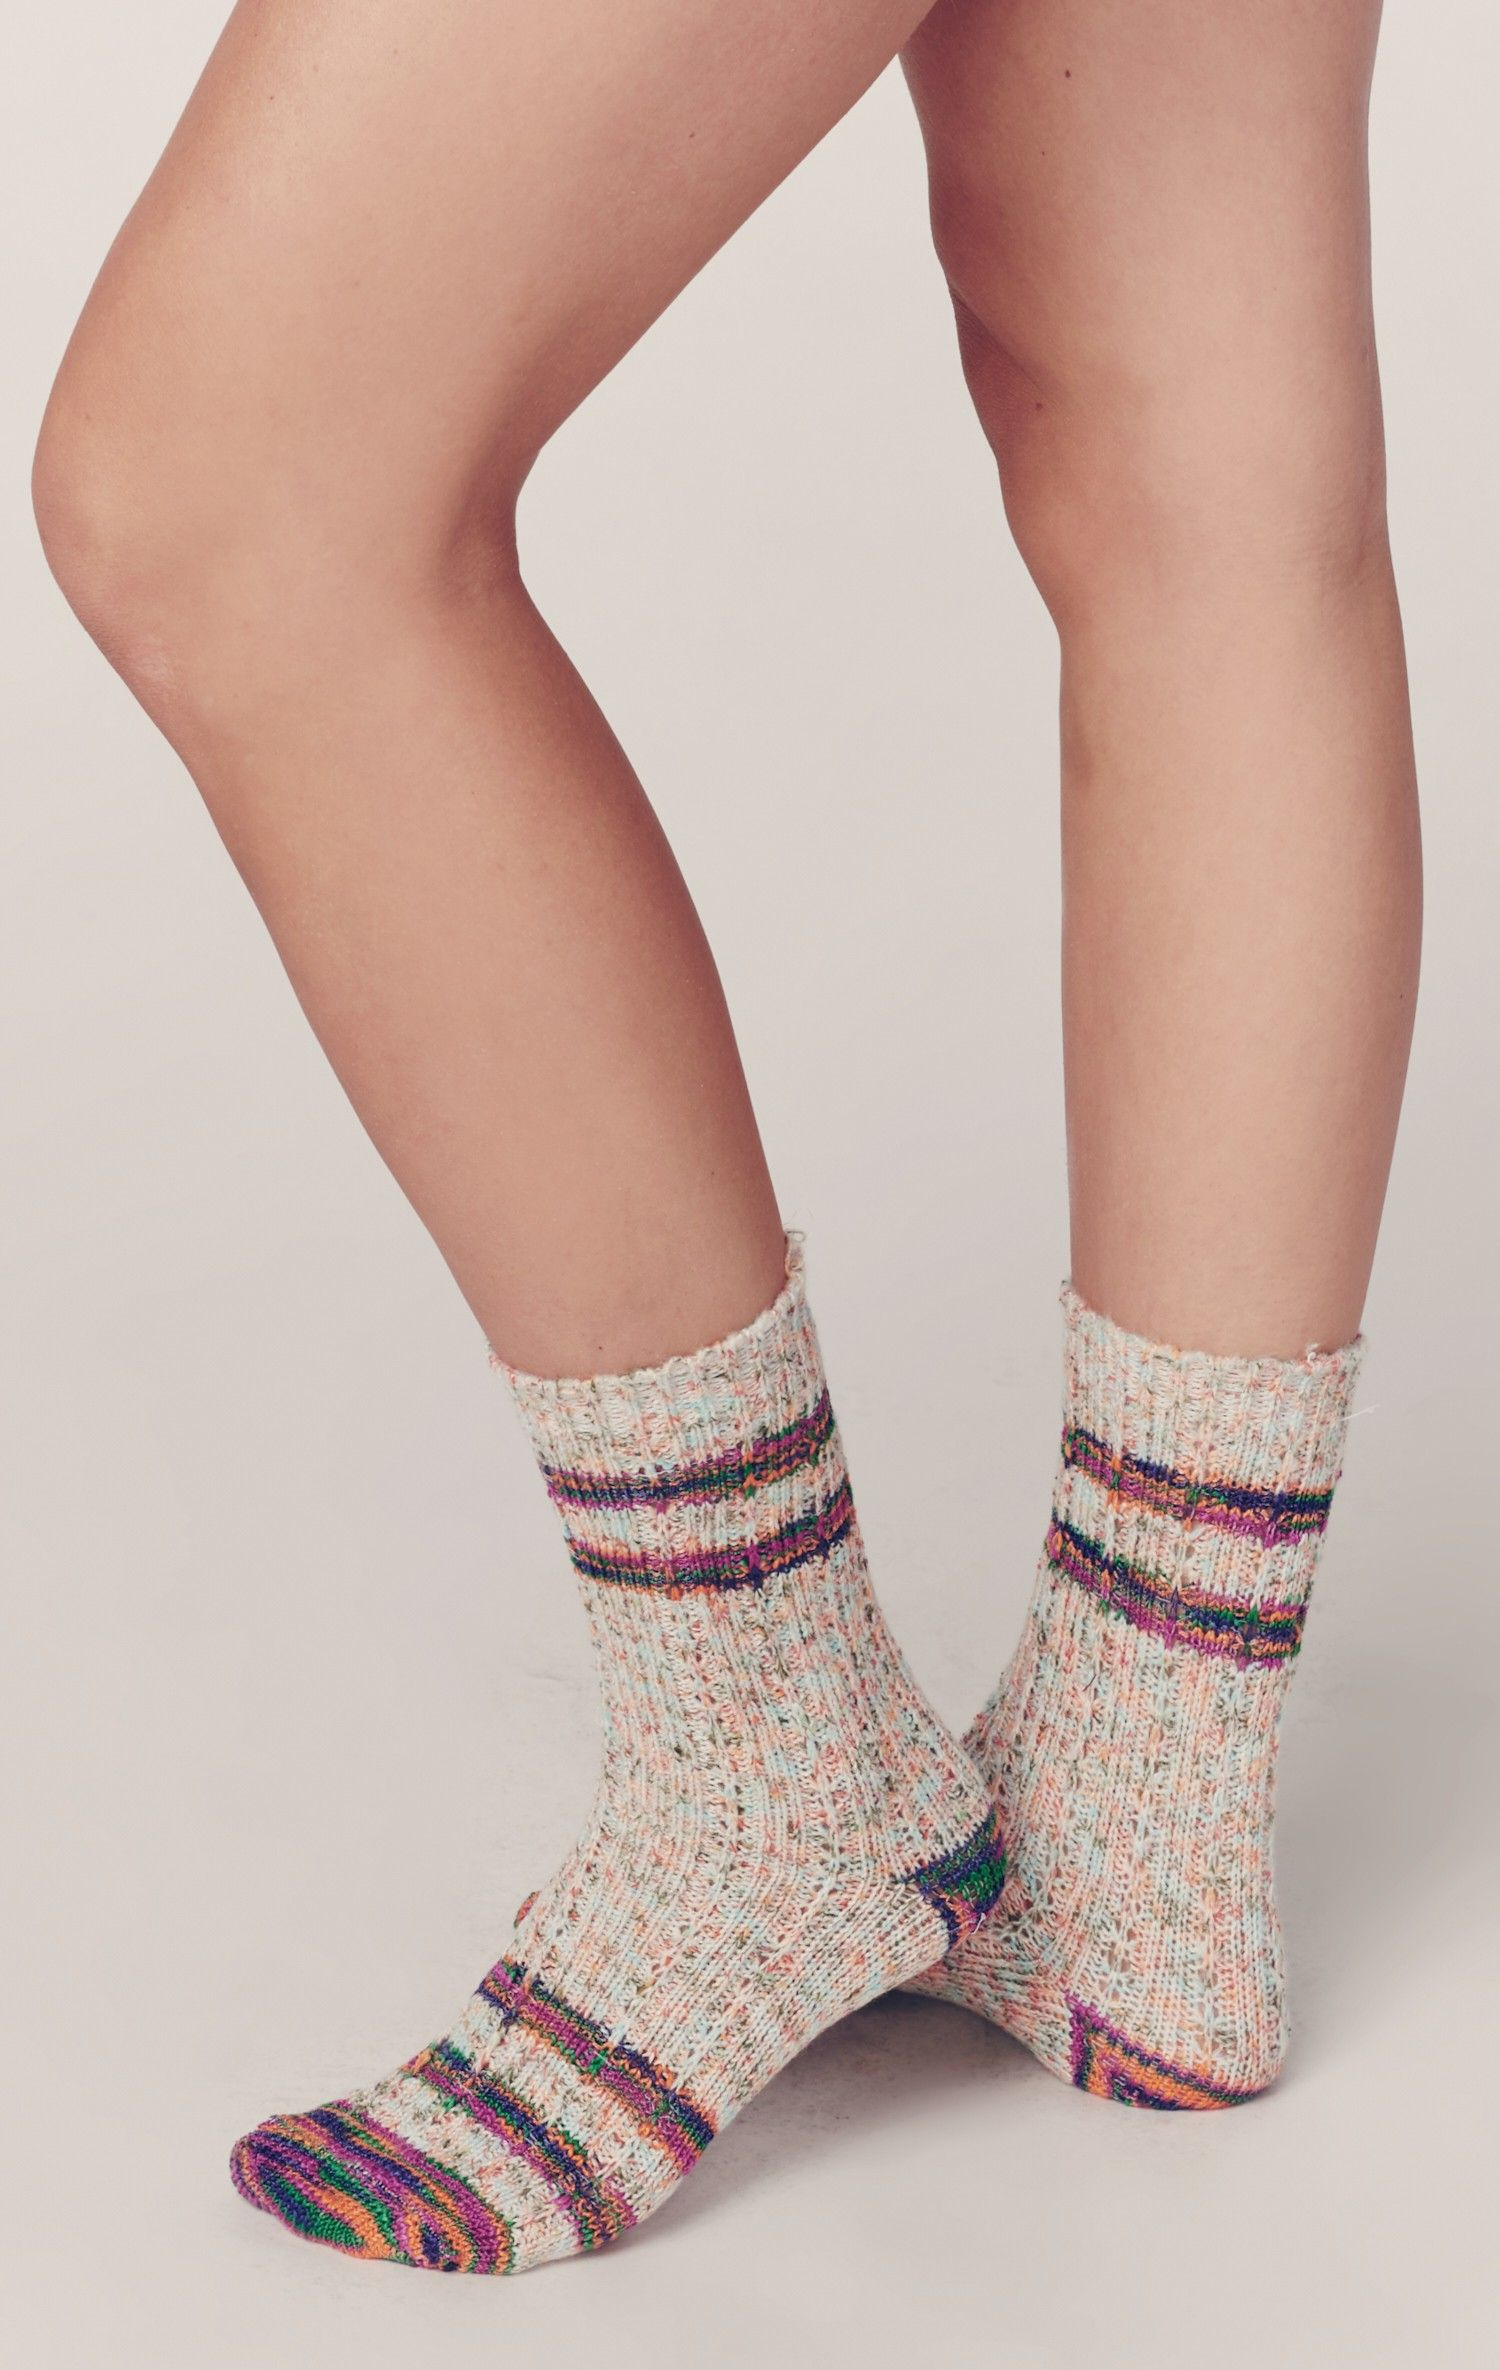 CVDGSAD Arale-Norimaki-Wallpapers A Vintage Soft Thick Knit Casual Crew Boot Socks